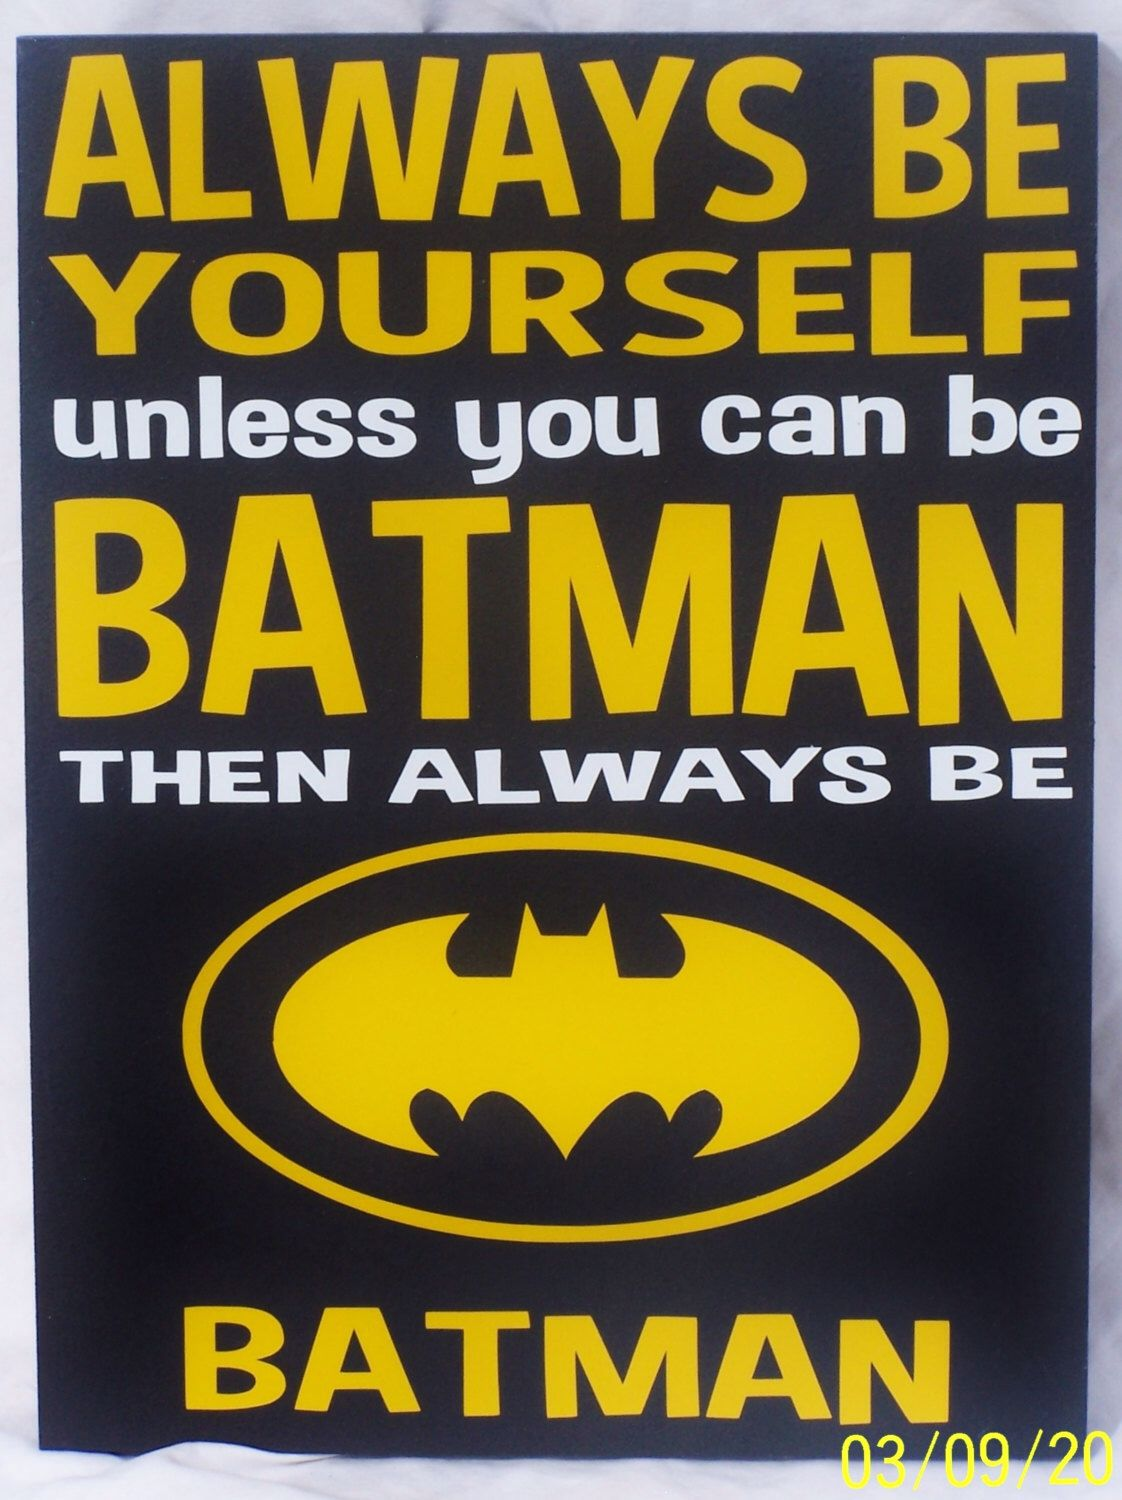 Batman Sign Always Be Yourself Unless You Can Be Batman Then